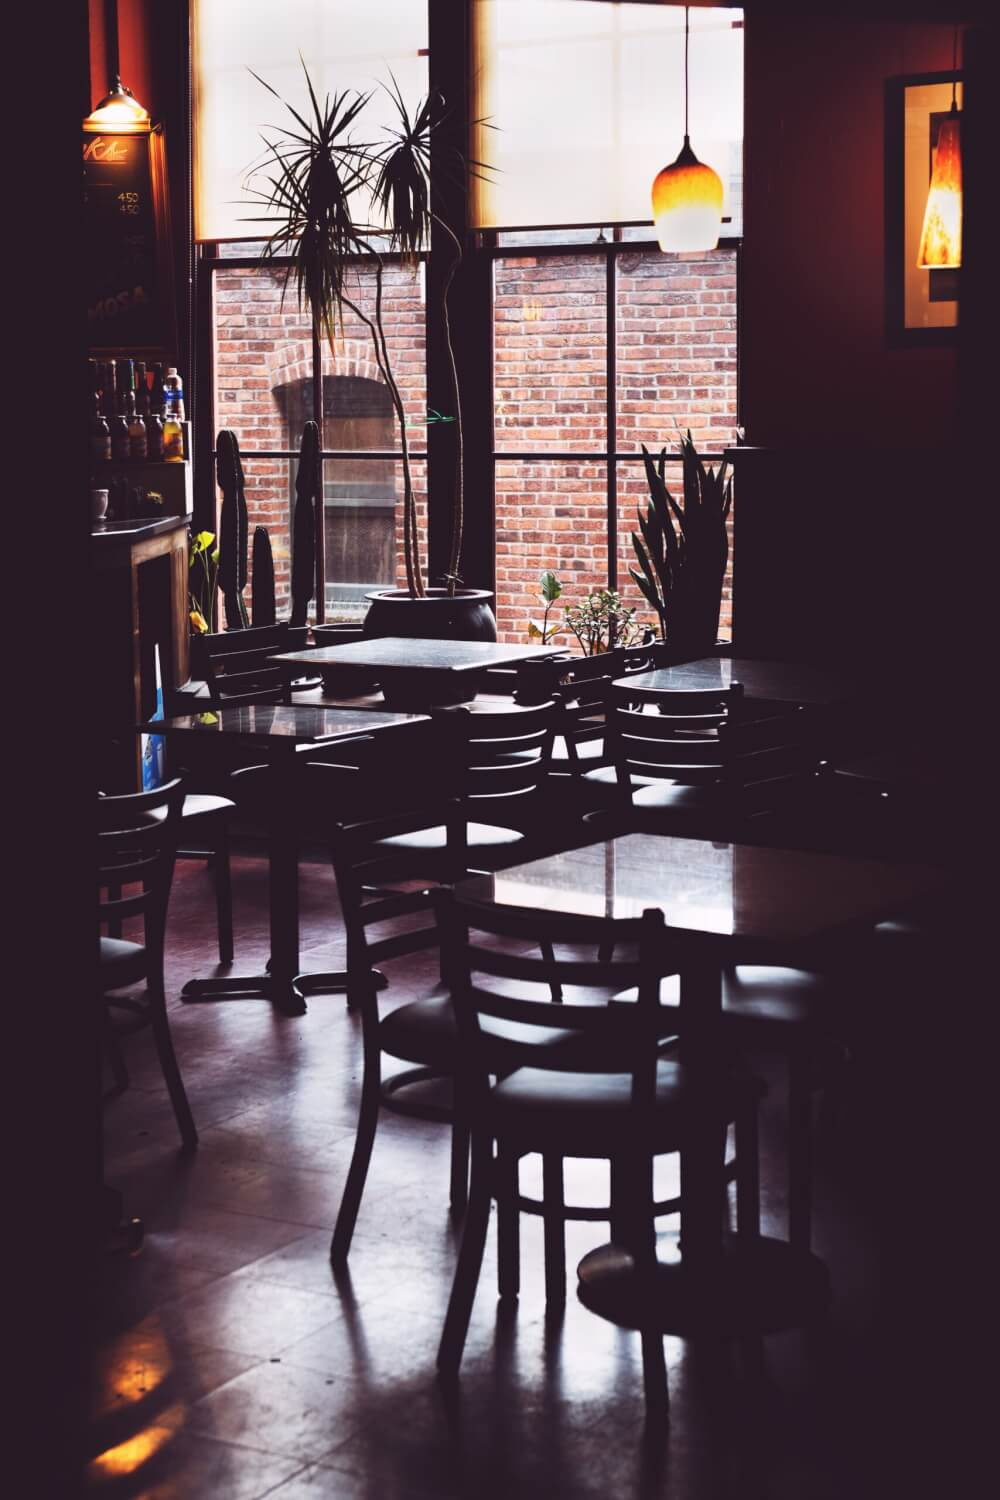 A view of an empty cafe, with a brick wall outside its window and the lights turned off.